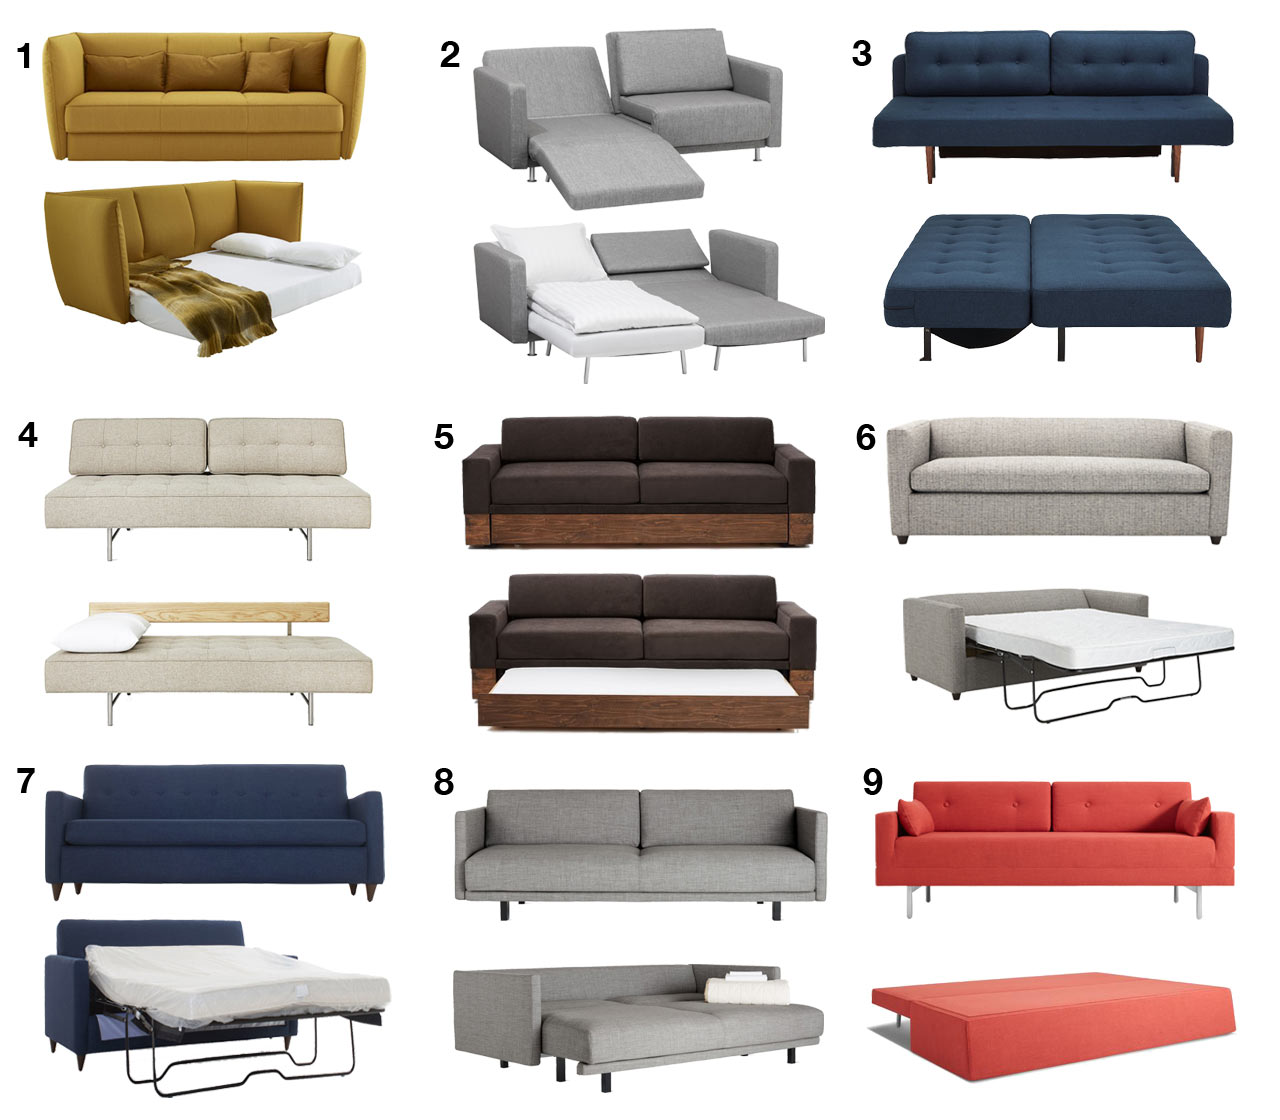 Awesome Storage Sleeper Sofas Your Guests Hate To Sleep On Sofa Beds Sleeper Sofas Your Guests Hate To Sleep Sofa Bed Couch Sofa Bed Sofa Beds houzz-03 Modern Sofa Bed